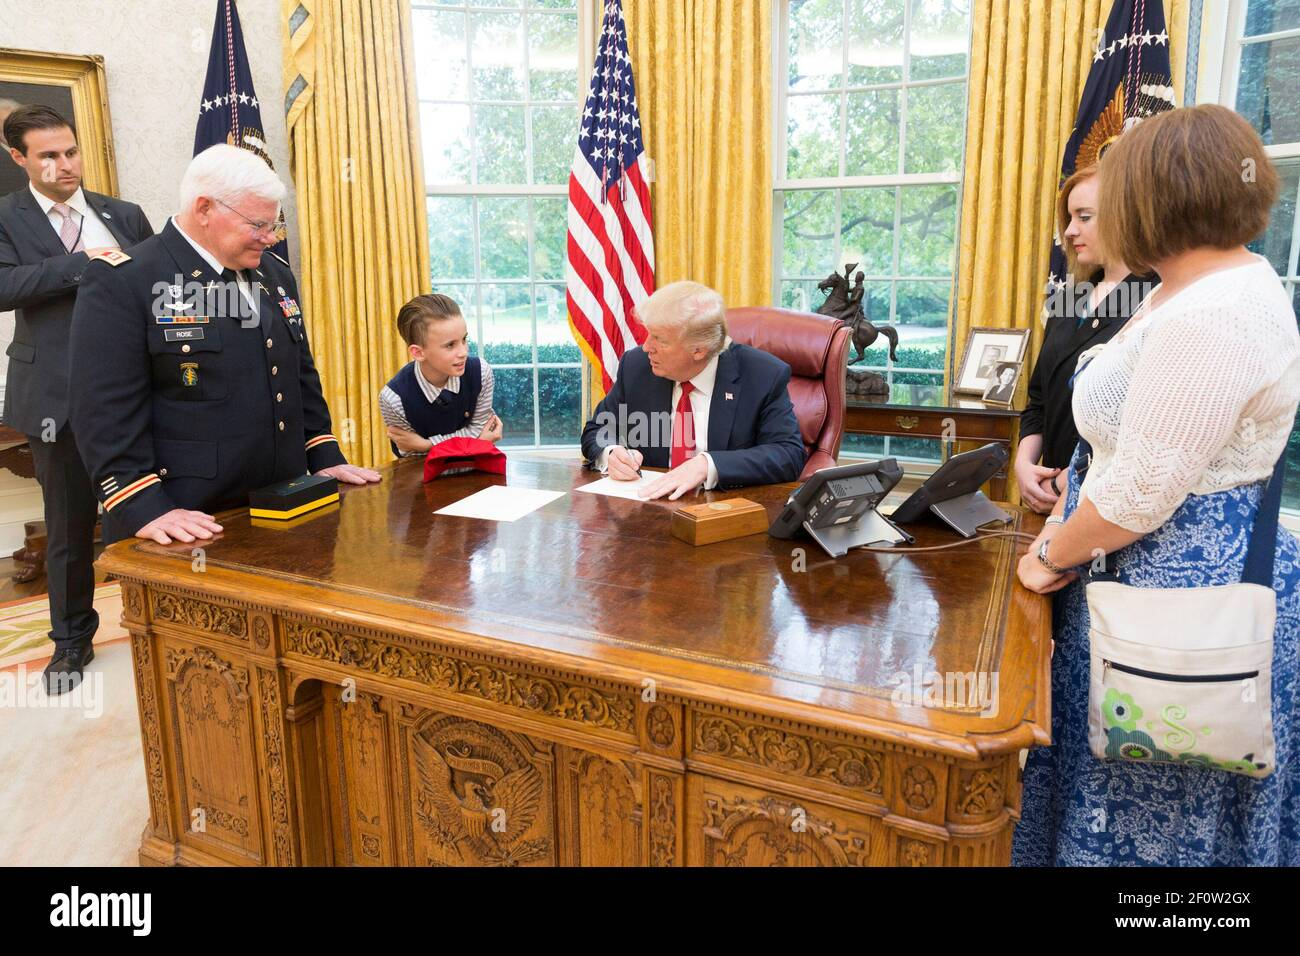 President Donald Trump writes a note of excuse from school note for Medal of Honor recipient retired U.S. Army Capt. Gary M. Rose grandson Christian left during a family visit in the Oval Room at the White House in Washington D.C.   October 23 2017 Stock Photo